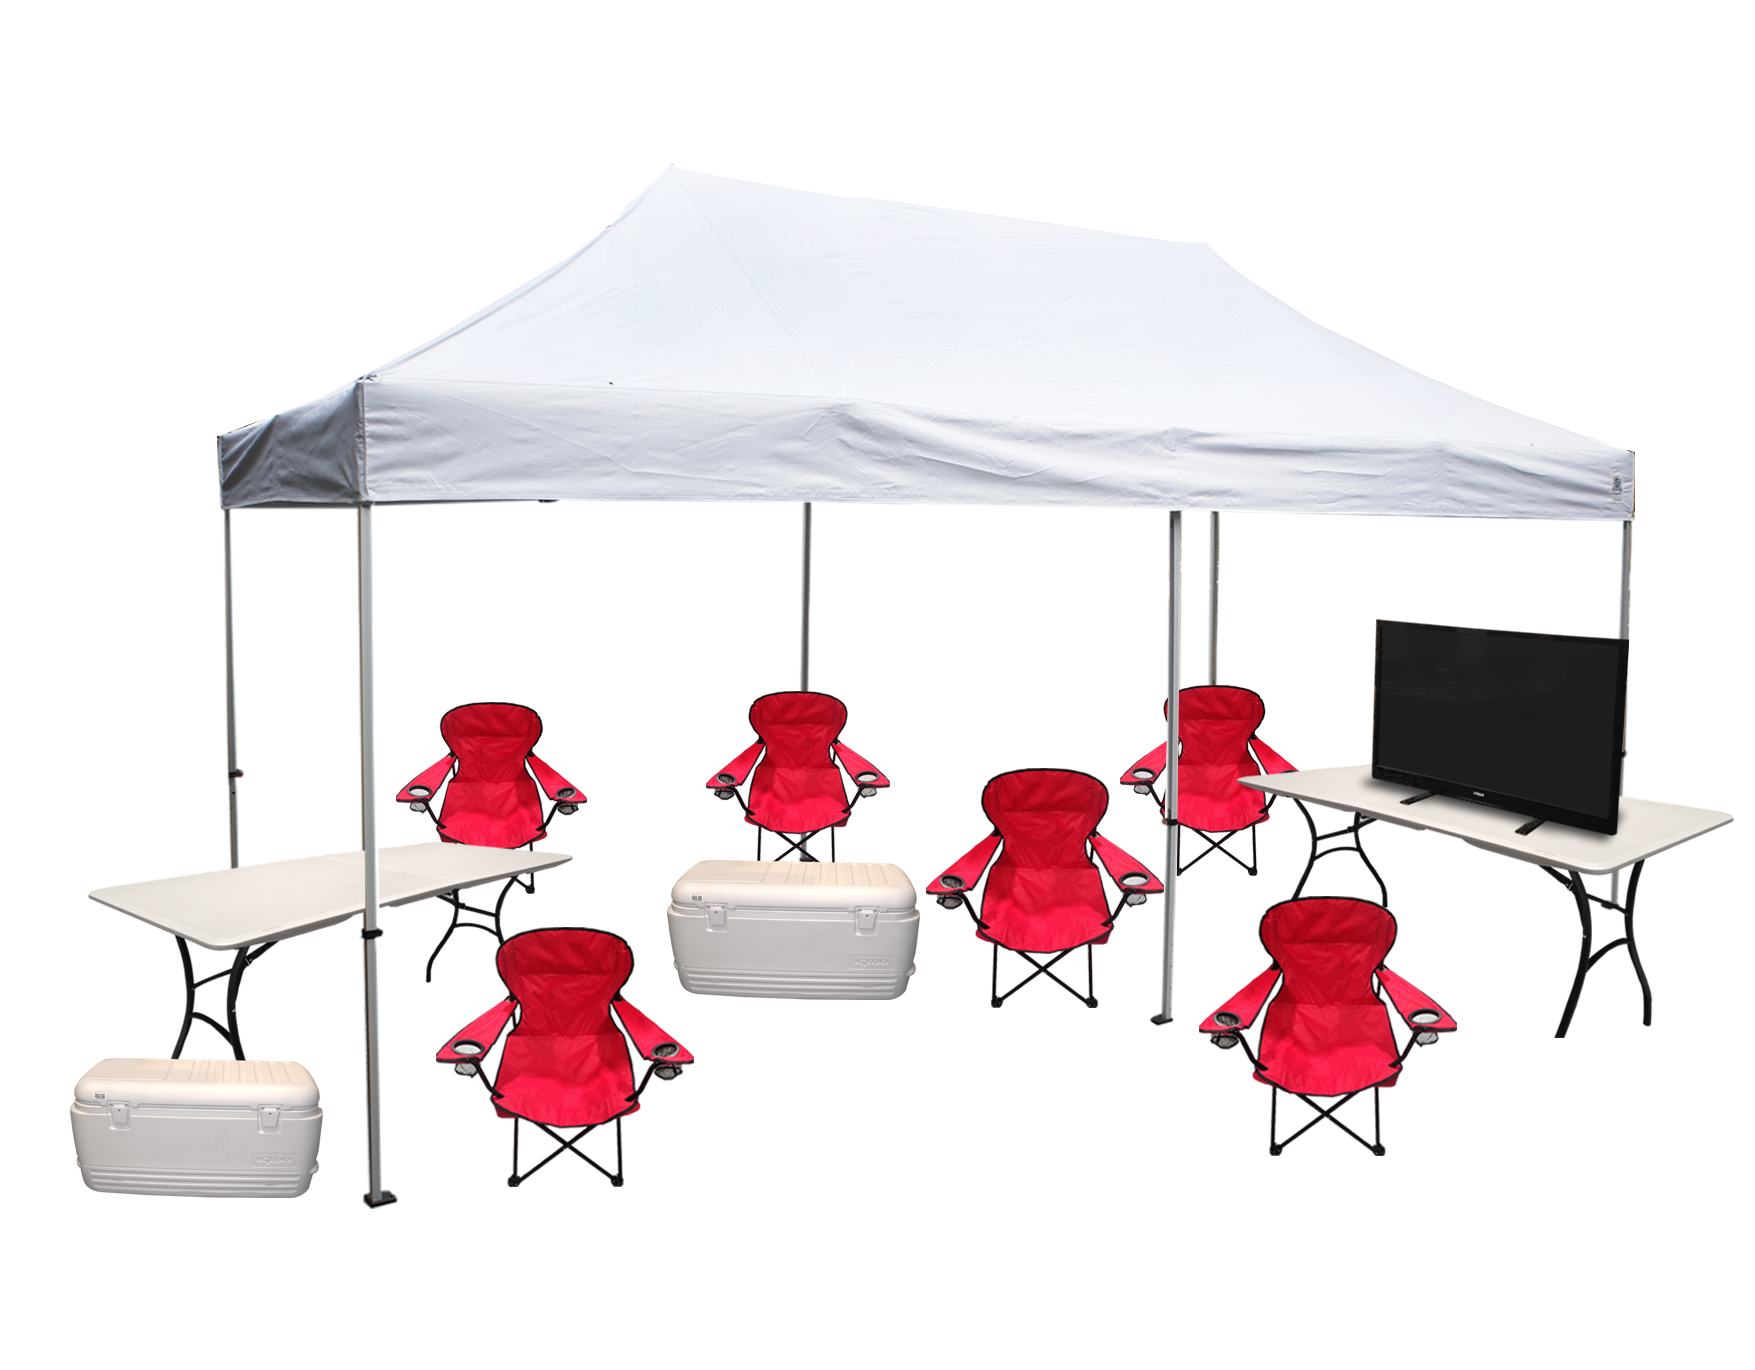 Tent/TV Setups  sc 1 th 198 & Event Tailgating Services Company | Tailgate Group